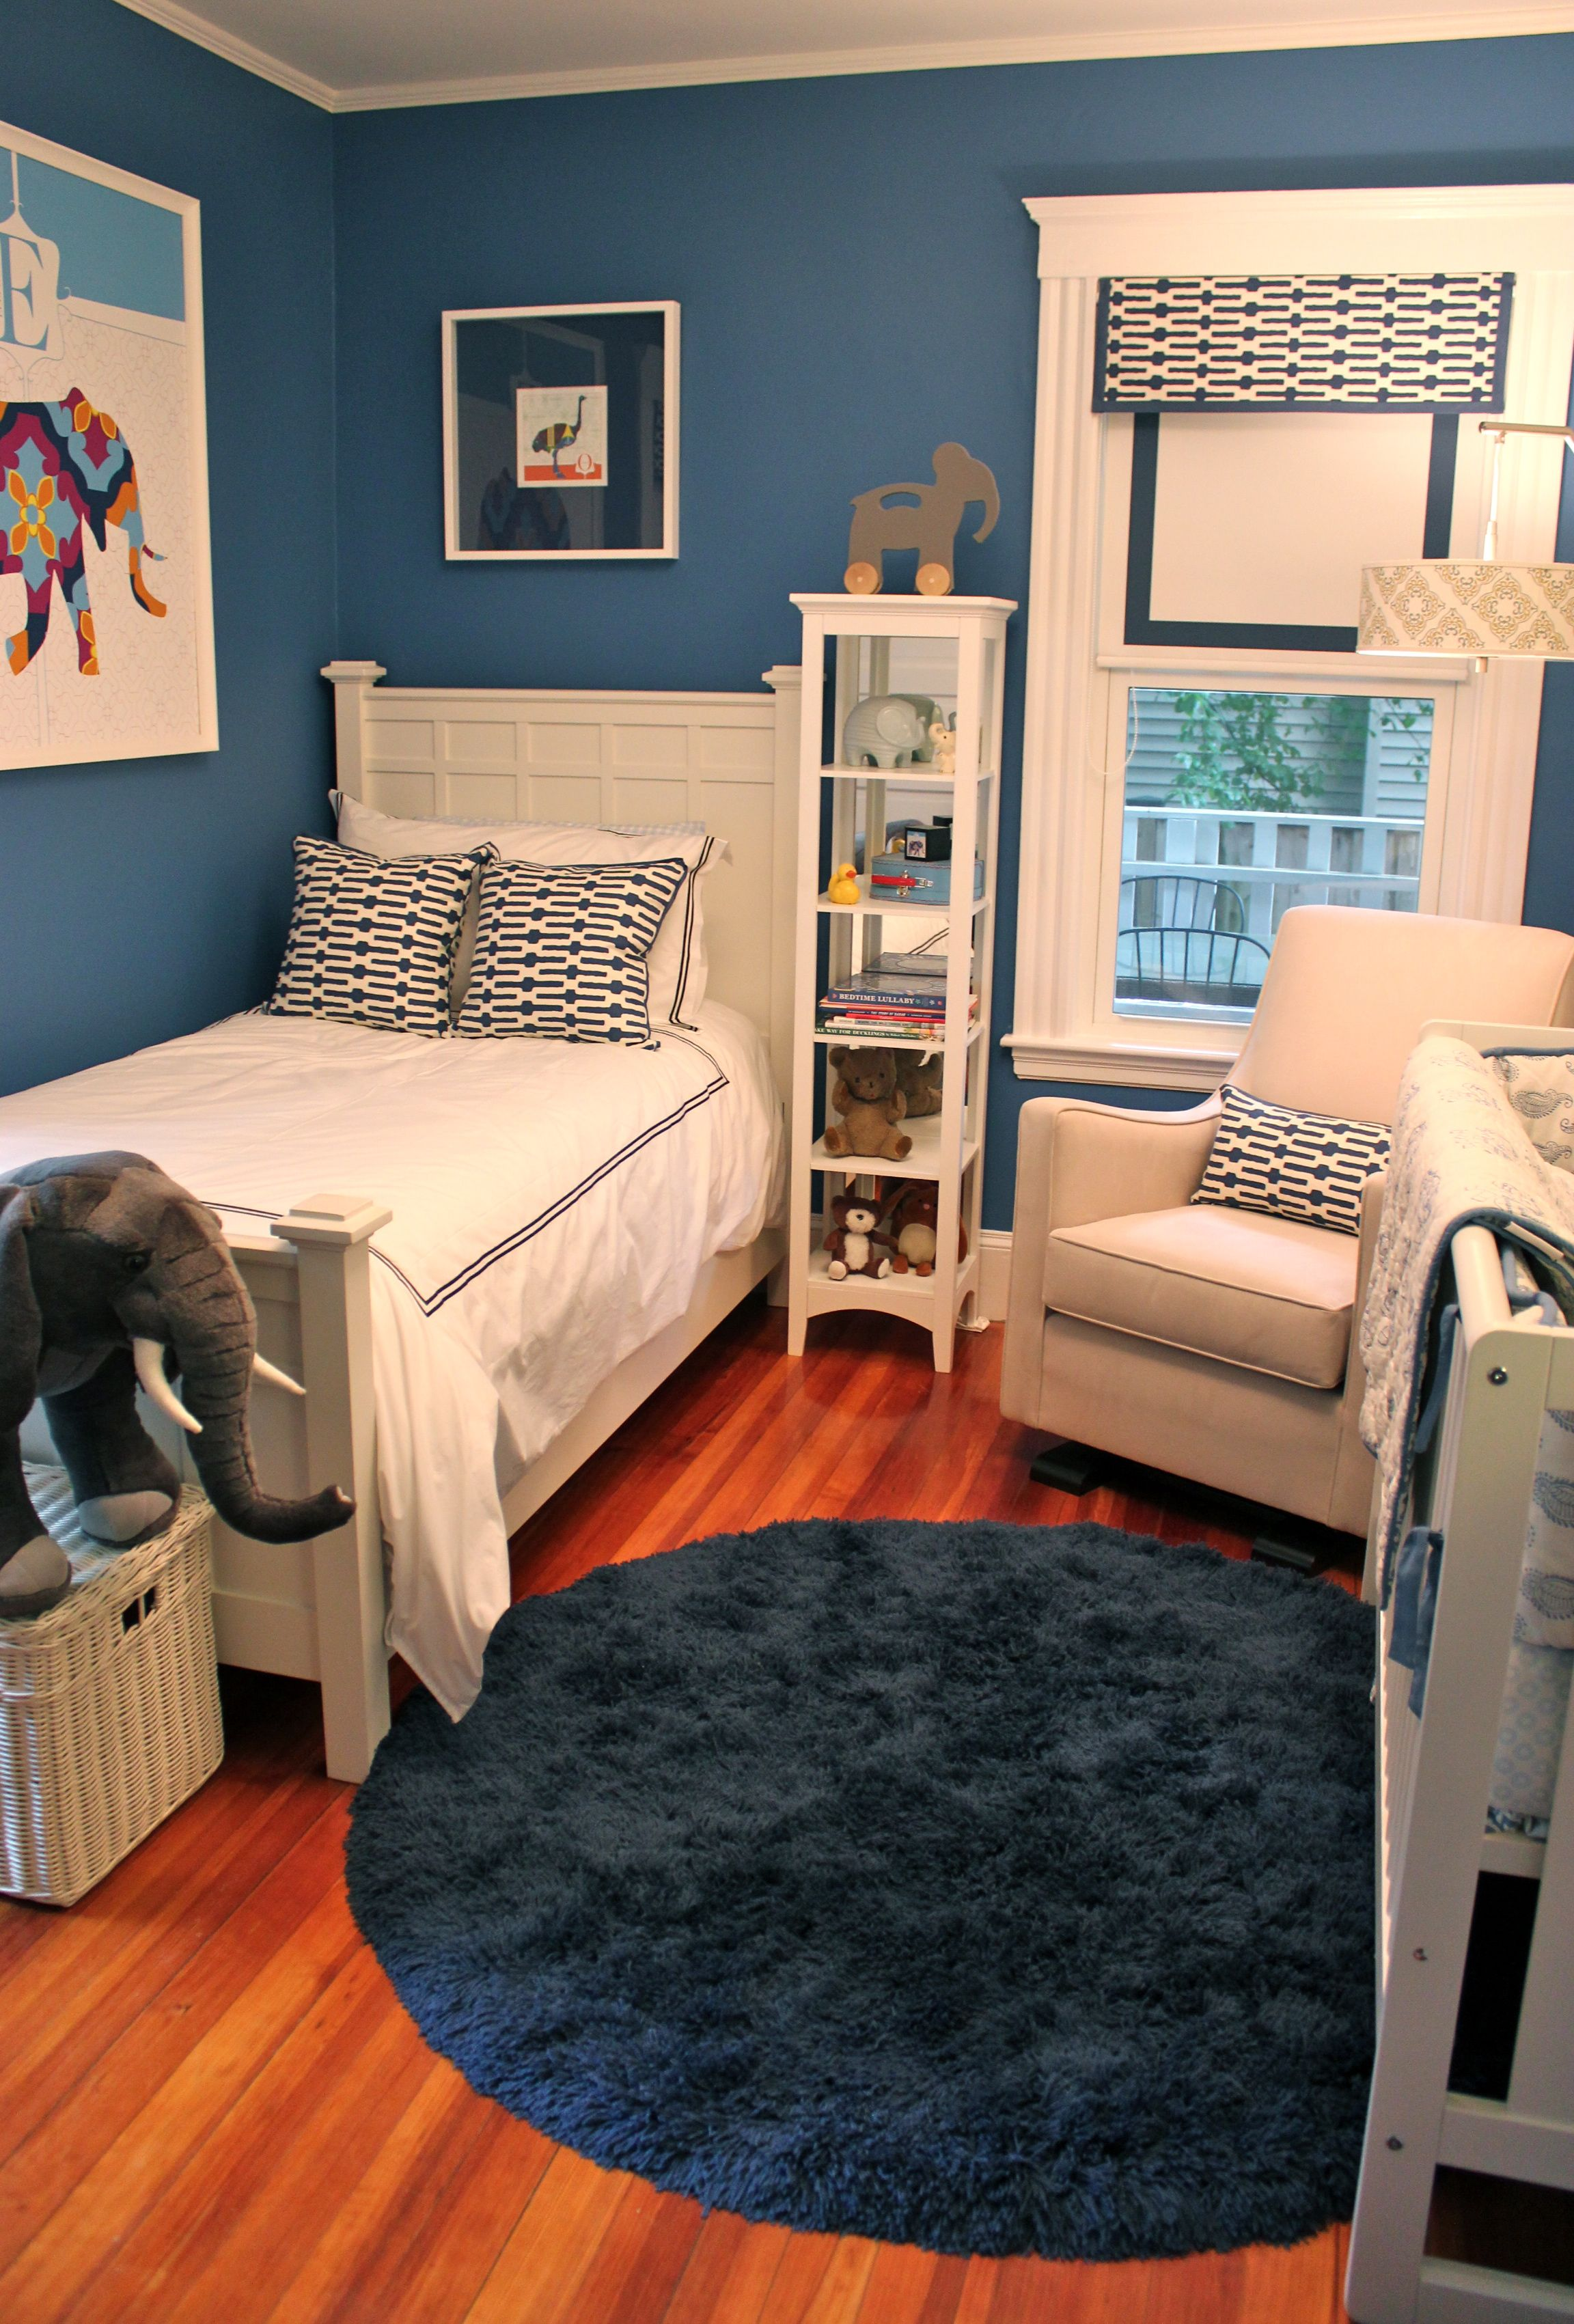 A Room For Bebe Shared Bedroom Small Bedroom Kid Room Decor